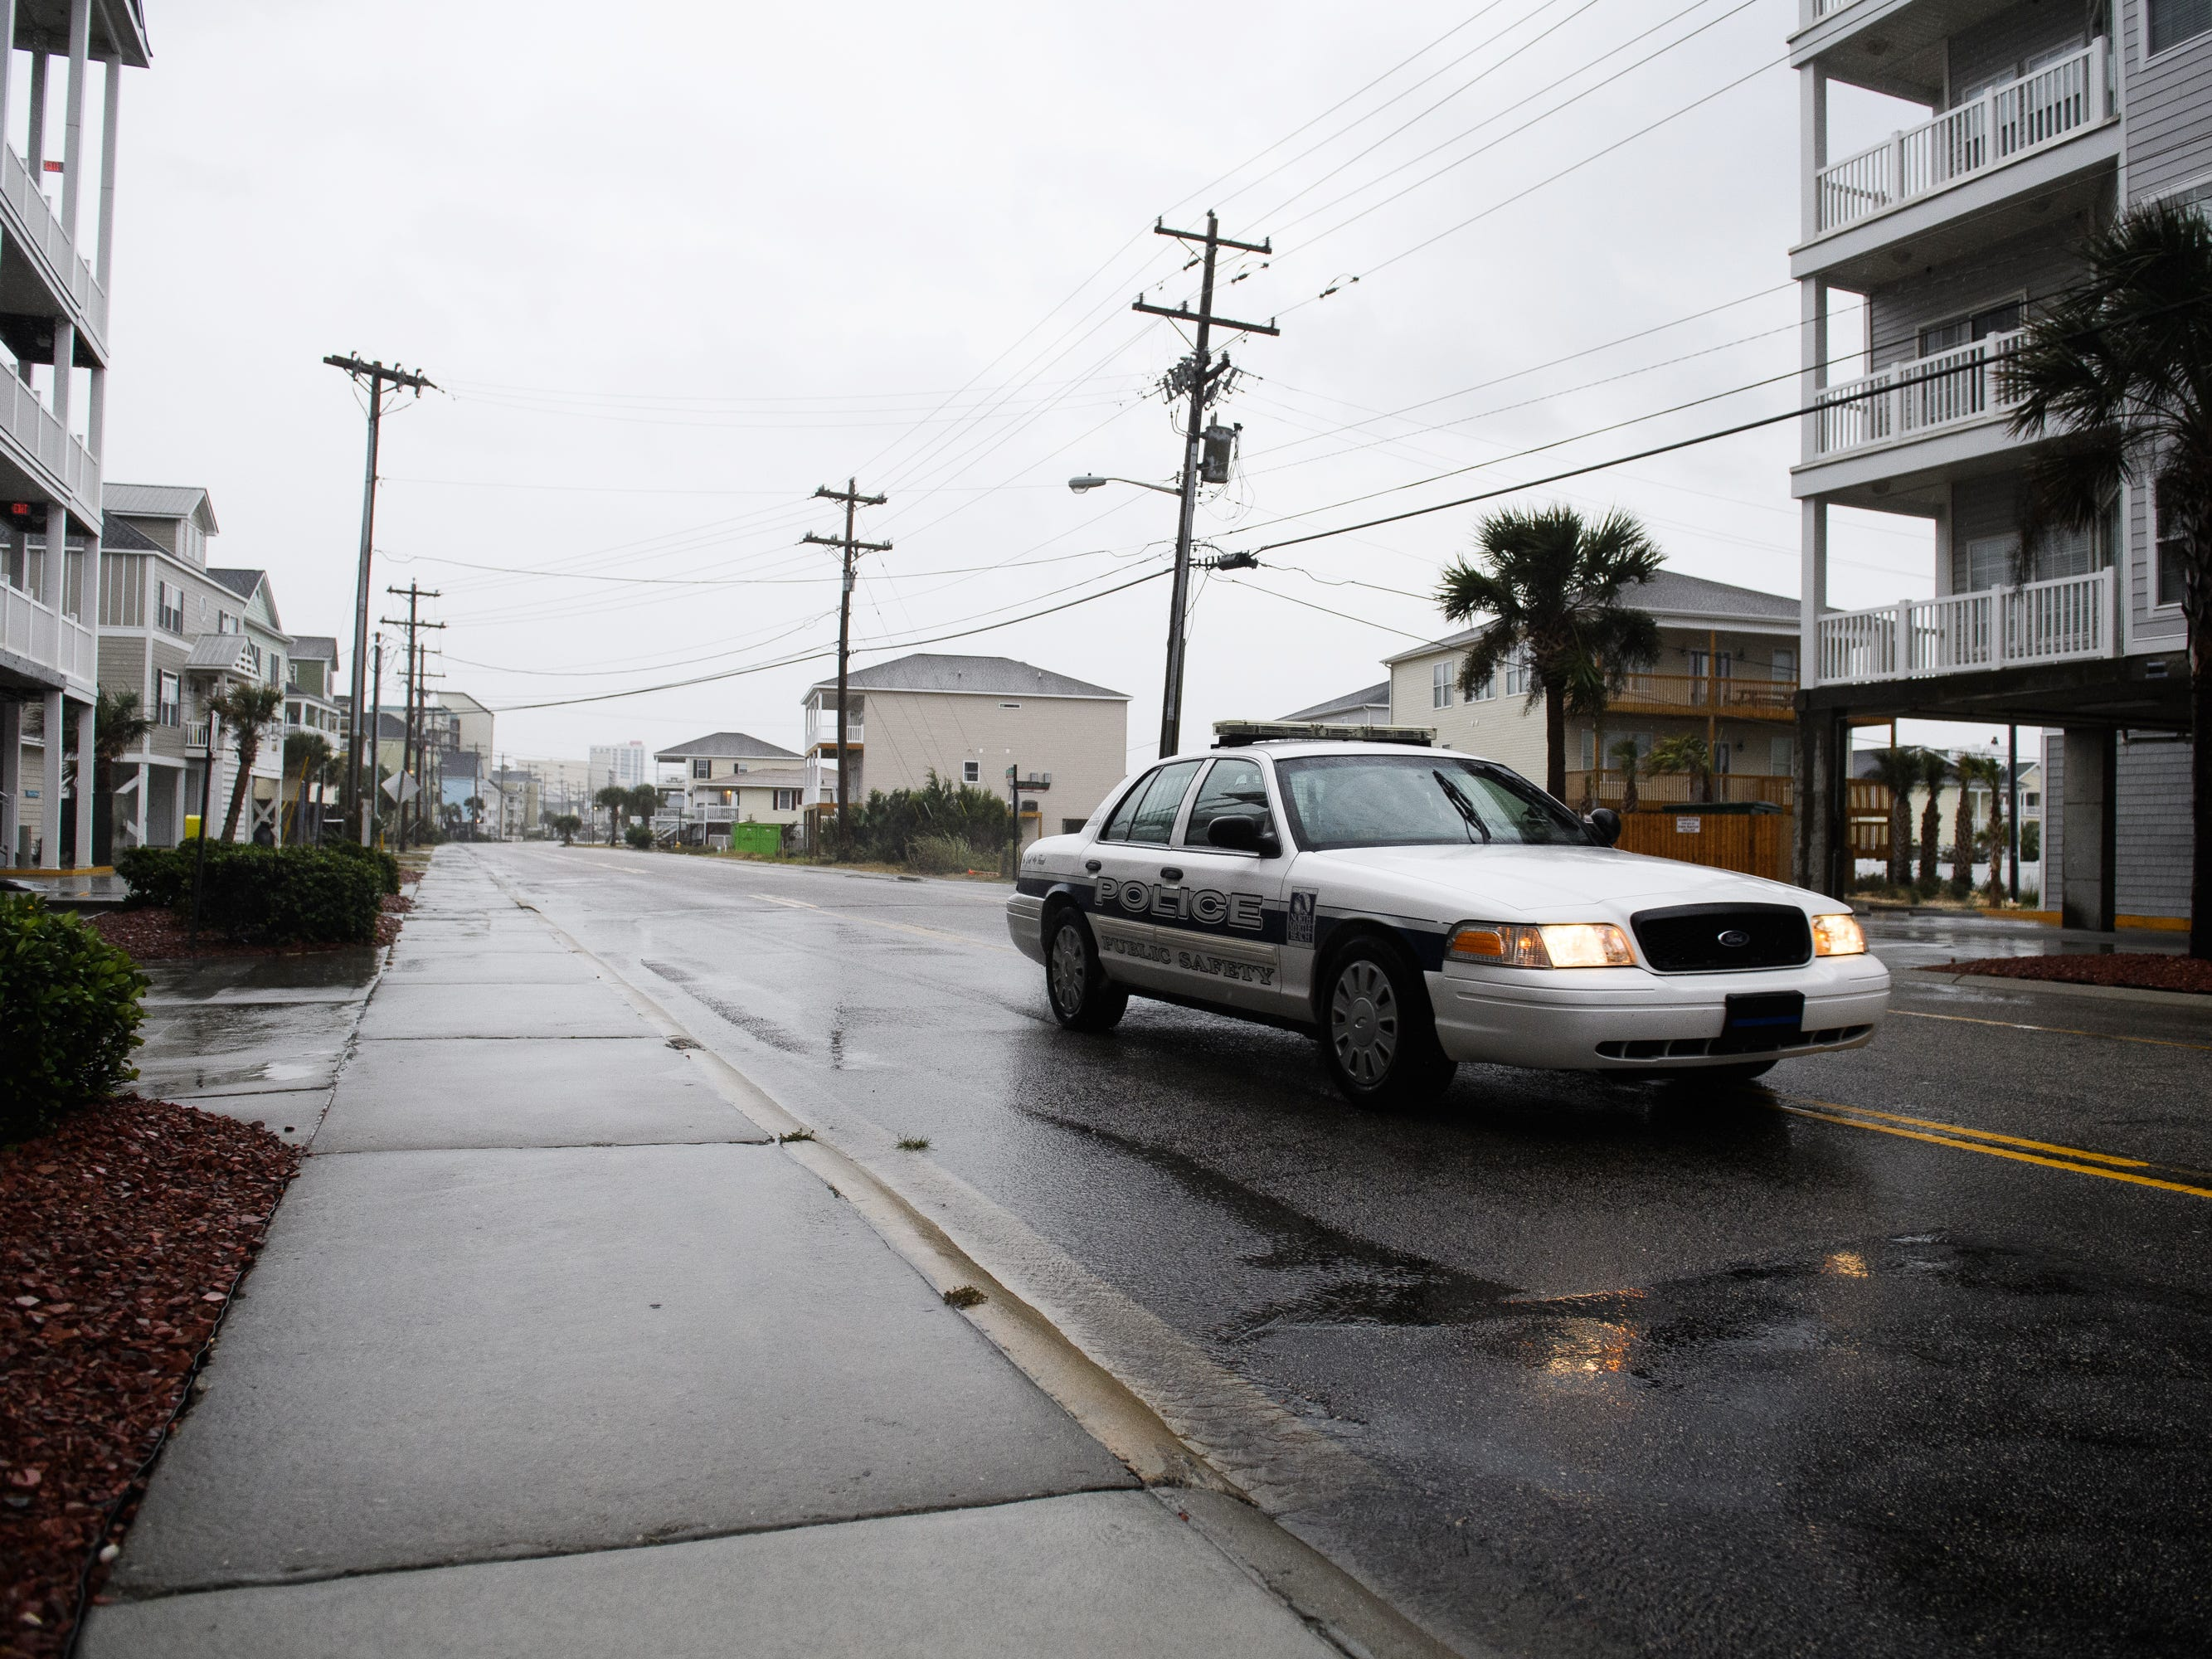 A North Myrtle Beach Public Safety officer drives down North Ocean Boulevard as the first rain from an outer band of Hurricane Florence hits the Cherry Grove Pier area of North Myrtle Beach, S.C. on Sept. 13, 2018.